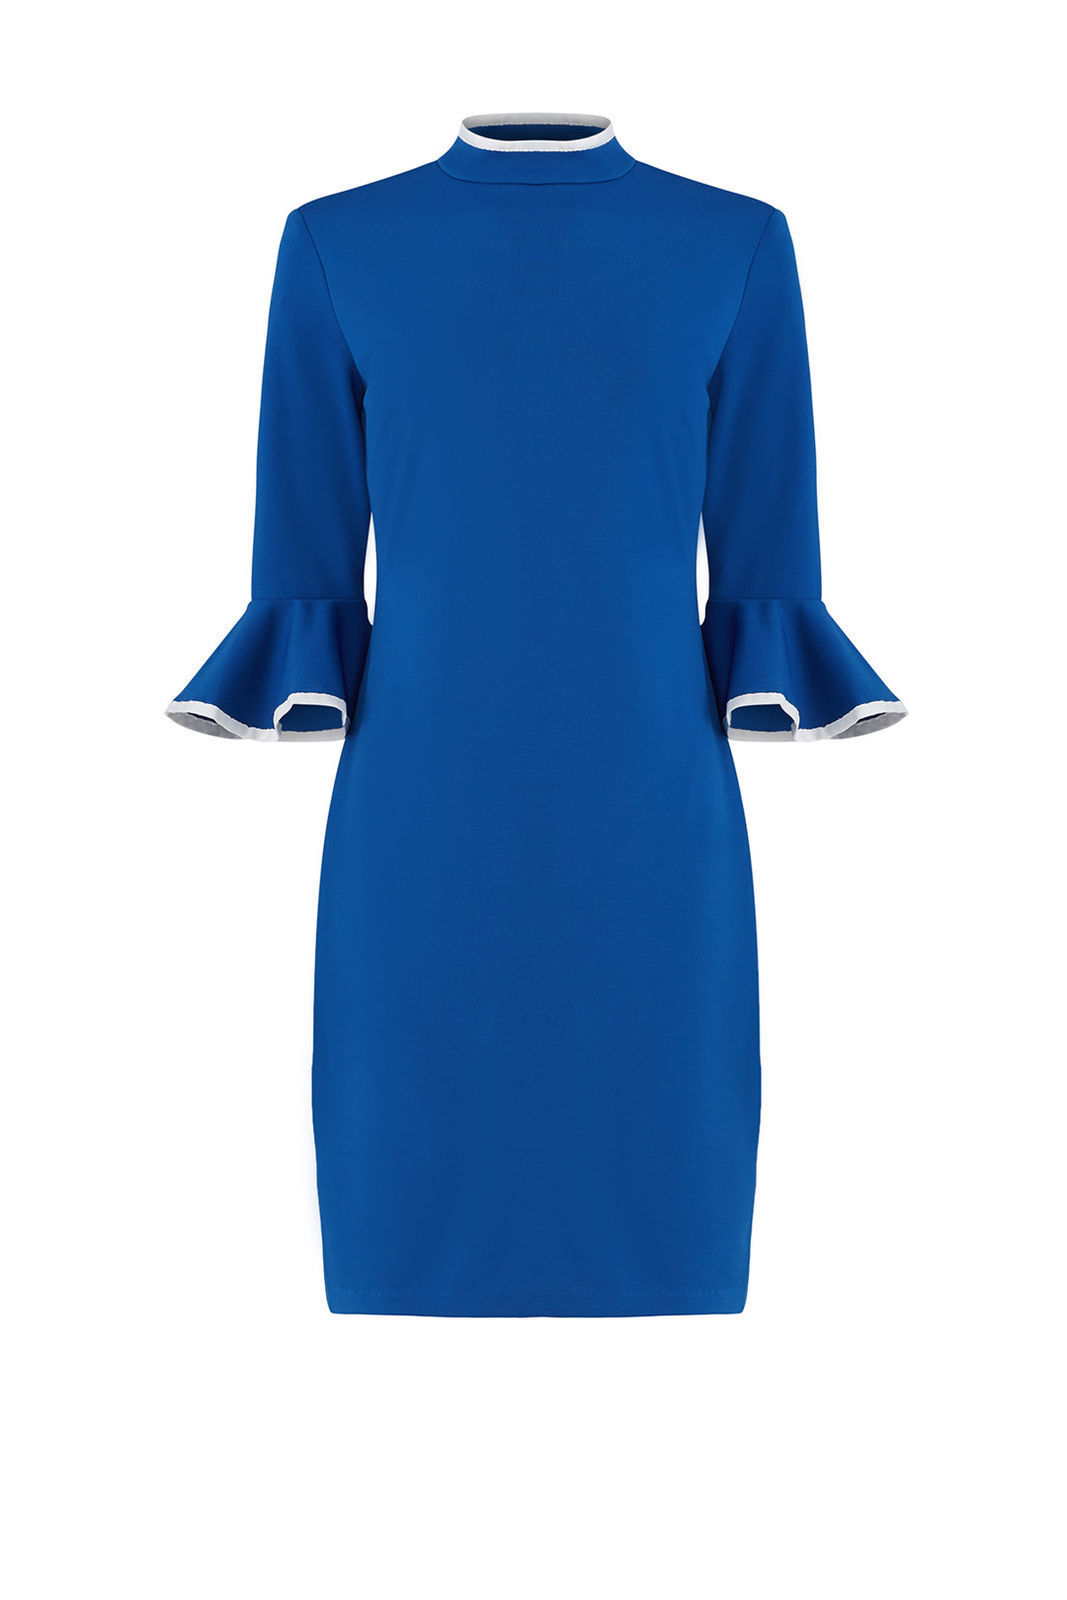 Alexia Admor Blue Womens Size XL Ruffle Sleeve Mock Neck Sheath Dress $245- #863